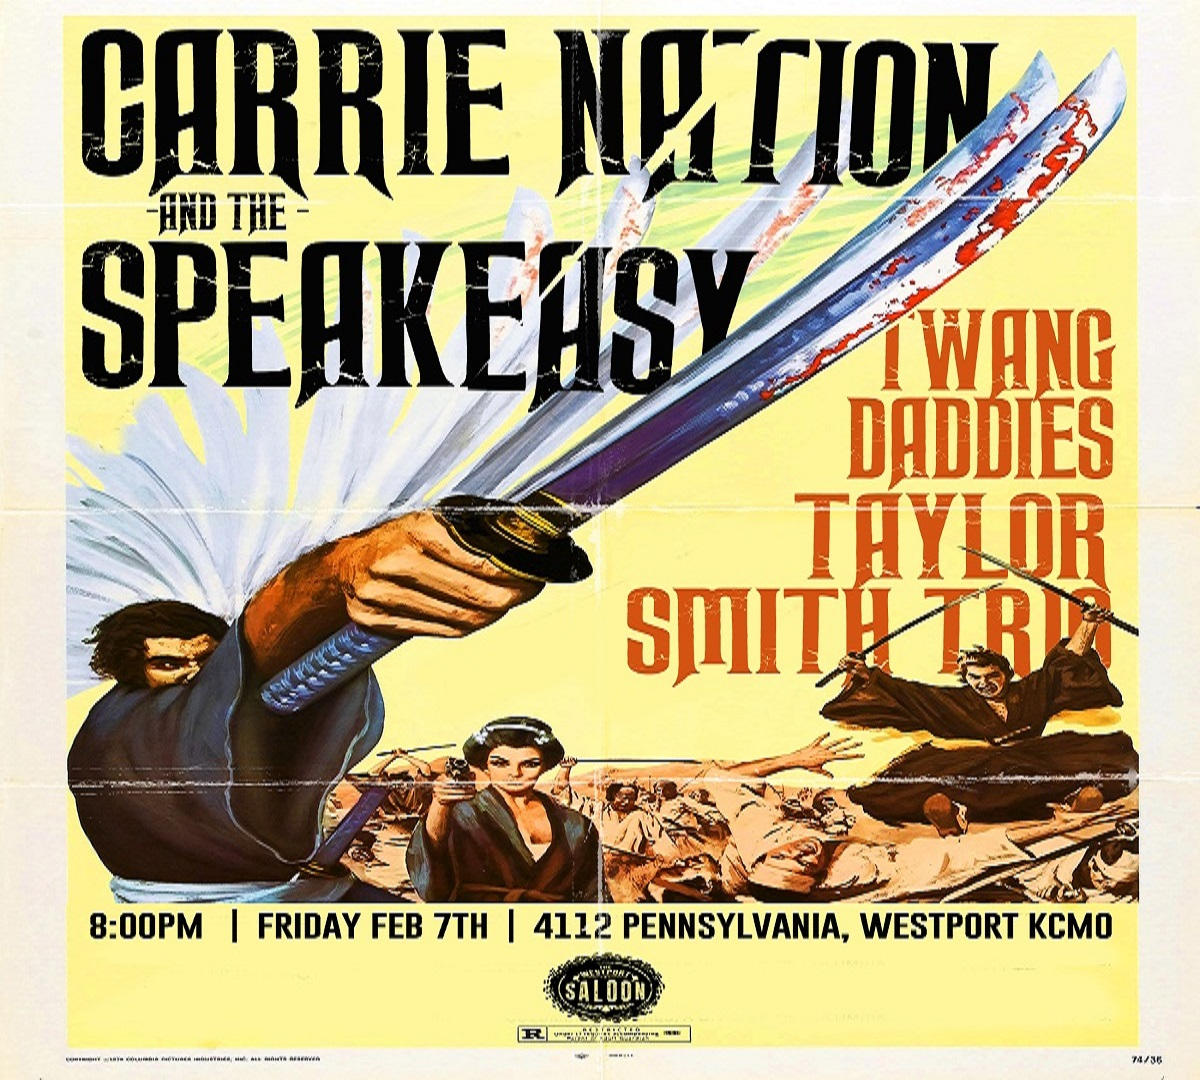 carrie-nation-and-the-speakeasy-taylor-smith-trio-twang-daddies